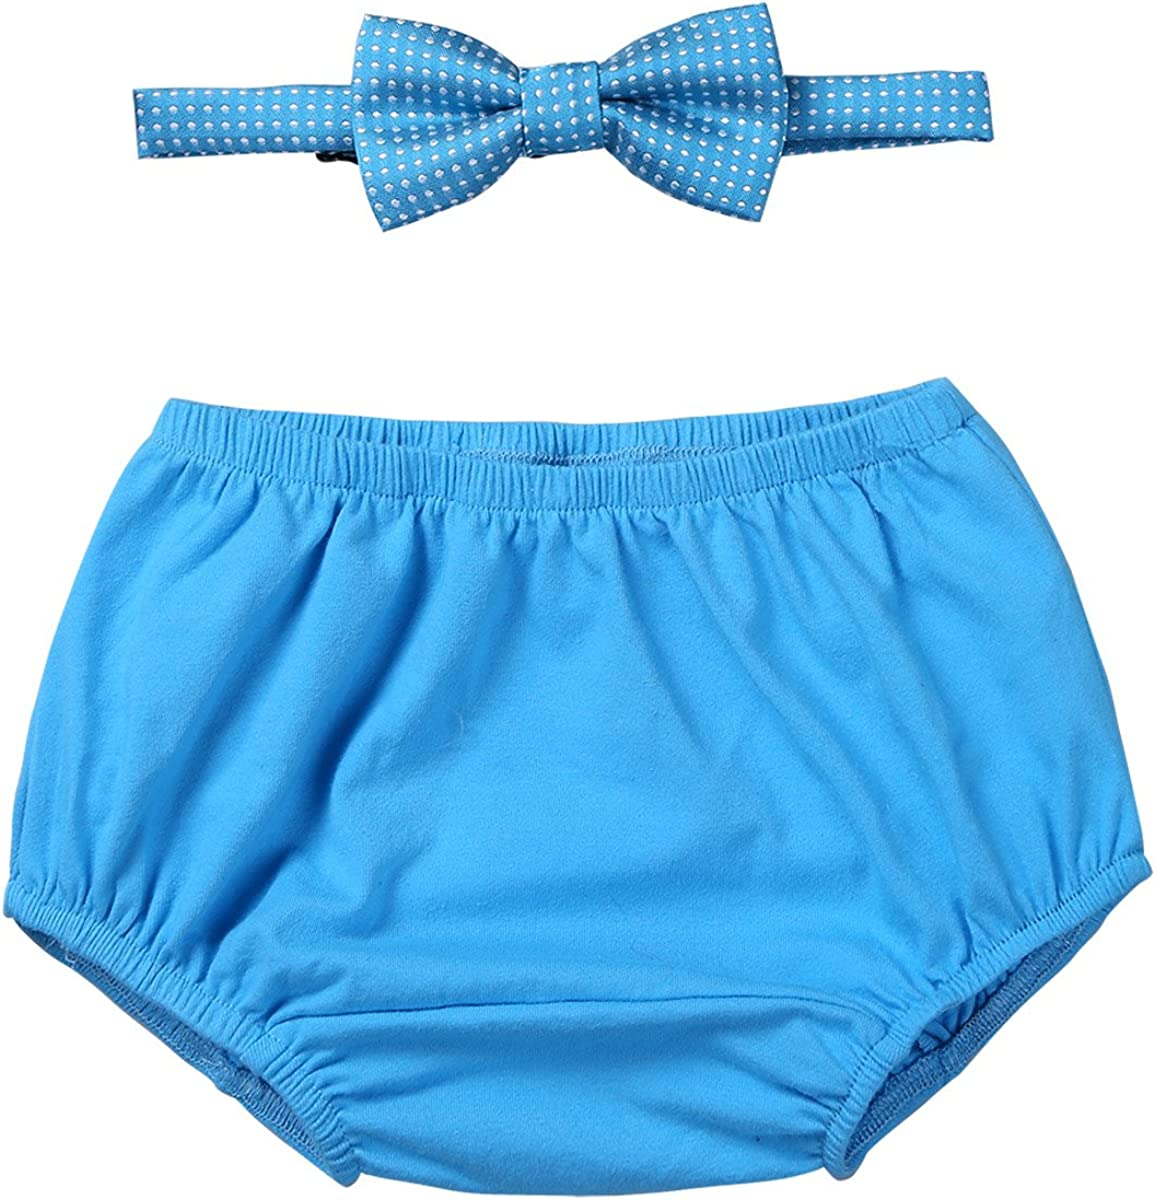 easyforever Unisex Baby Boys Girls Gentleman Birthday Party Outfit Bloomer with Bowtie Set Photo Daily Wear